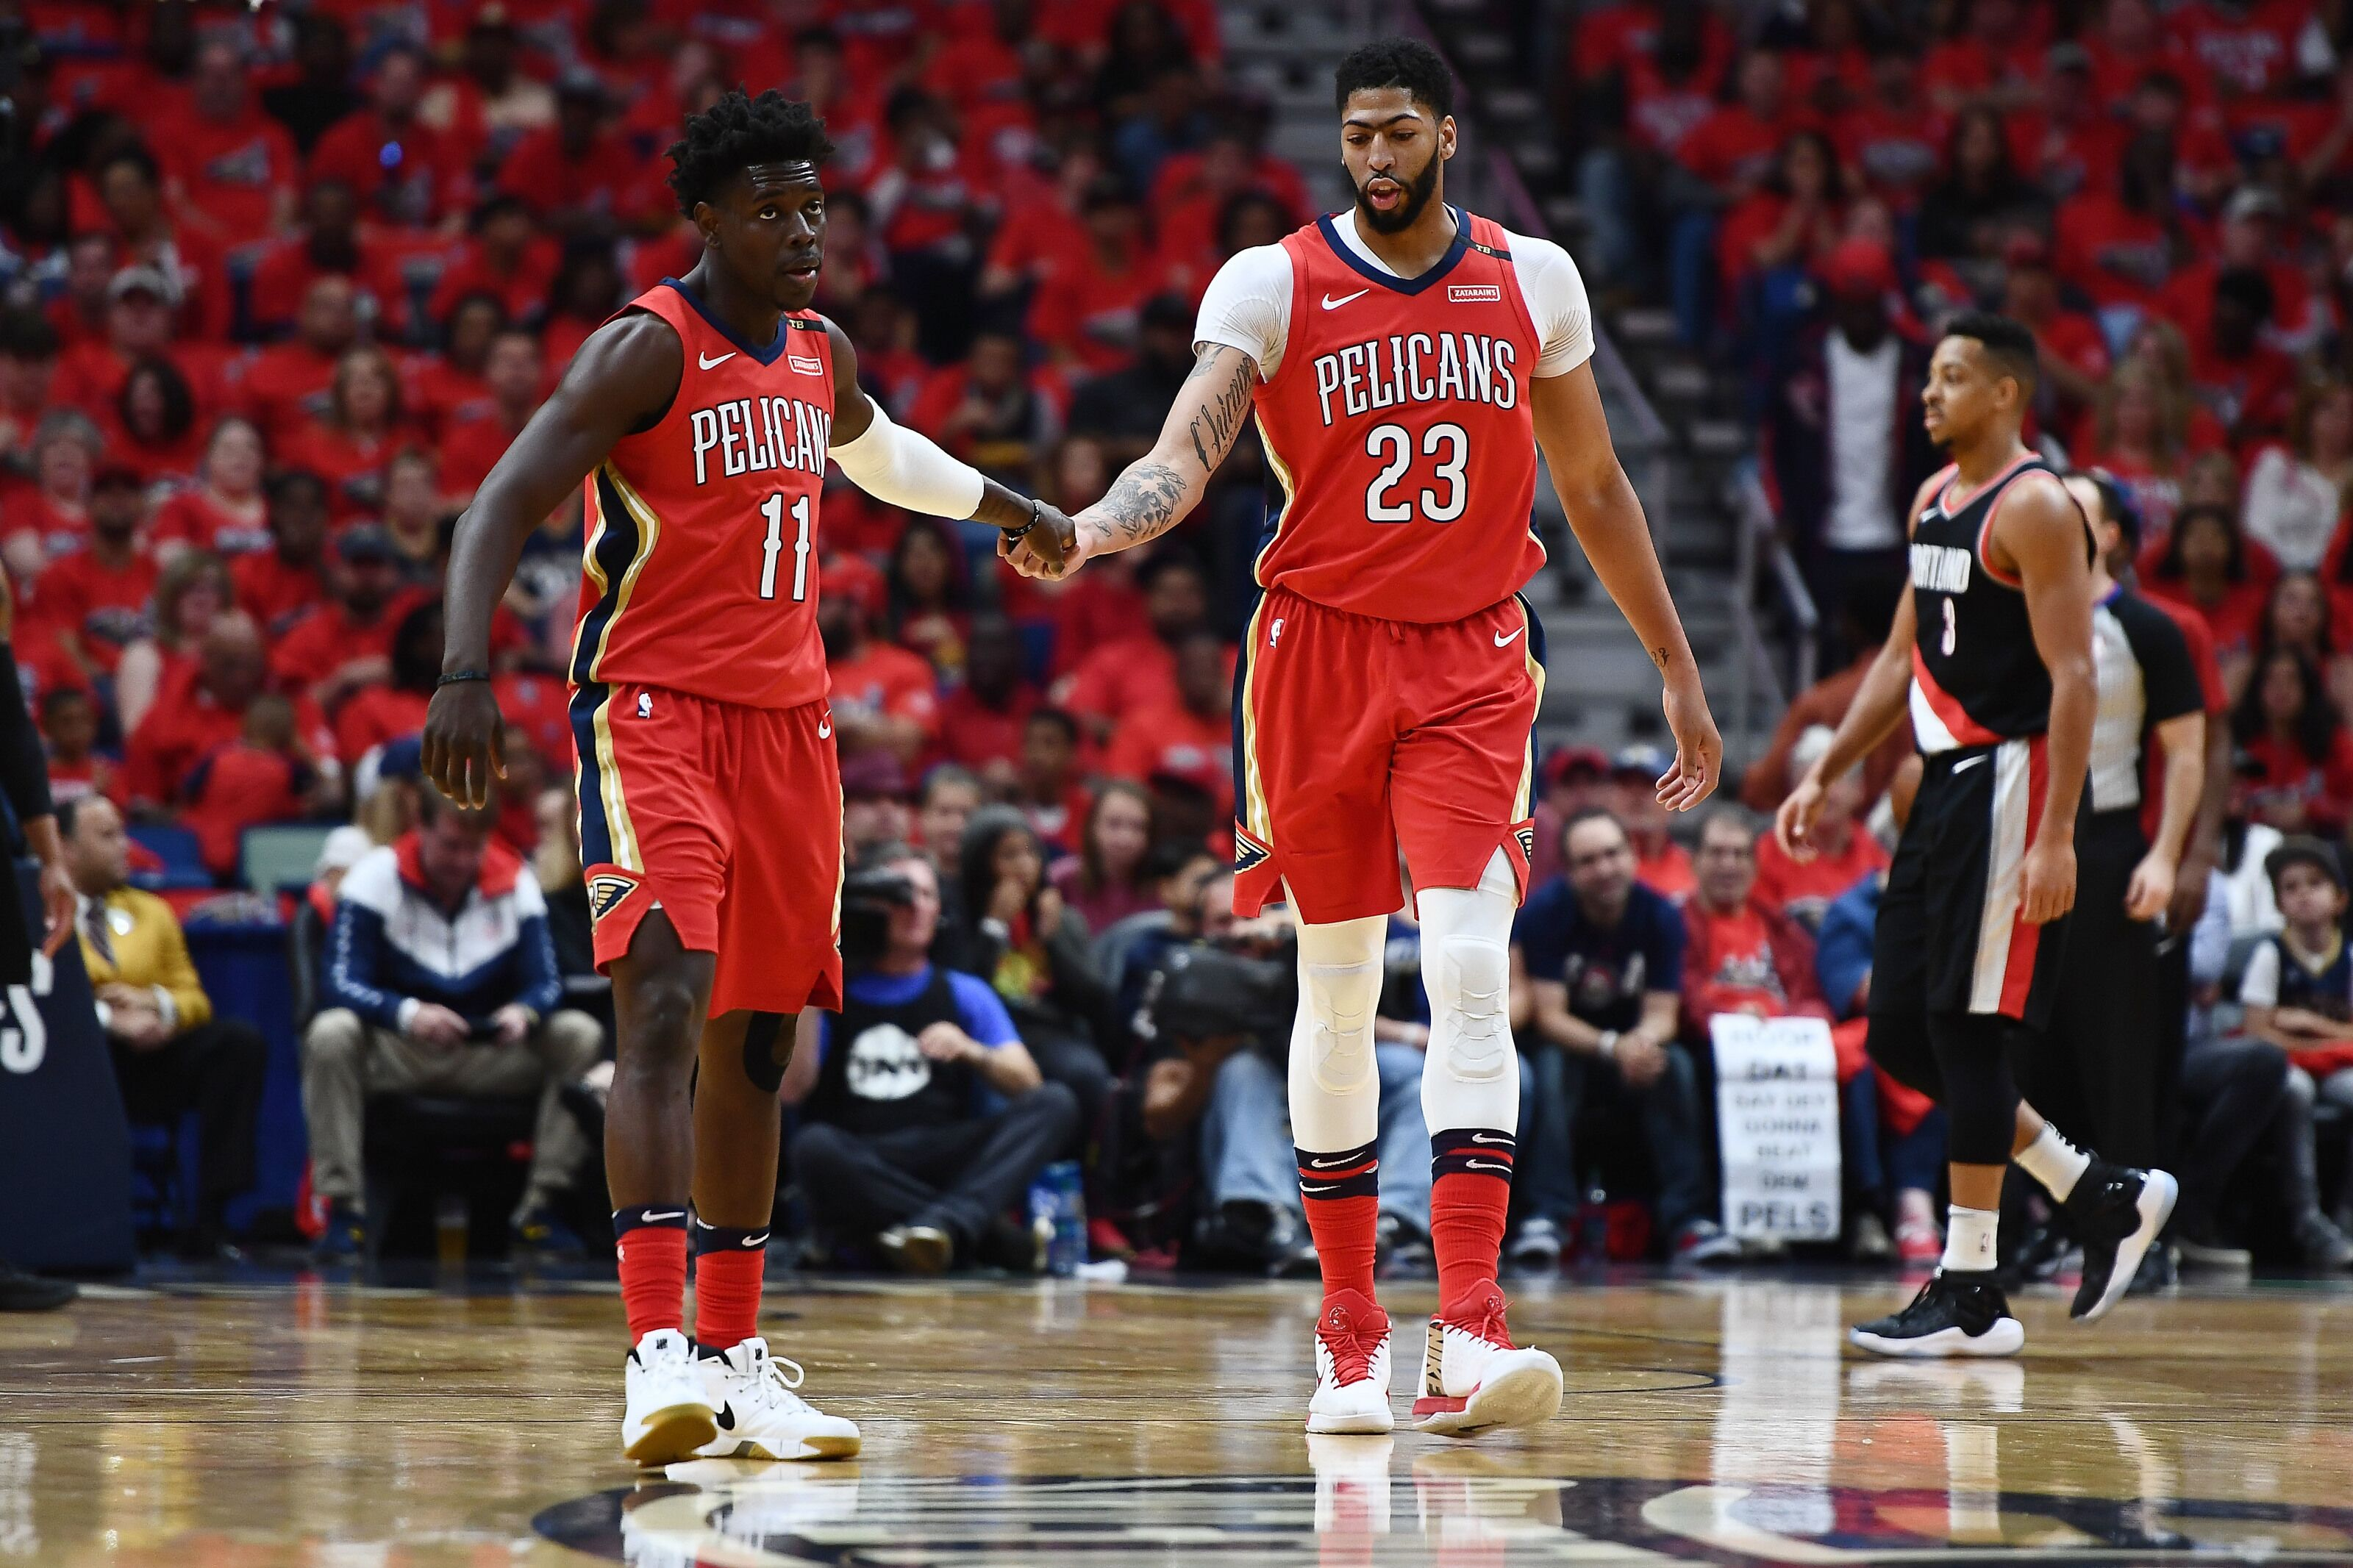 4/4/4 4 Positives Negatives And Oddities From Pelicans Blazers Series